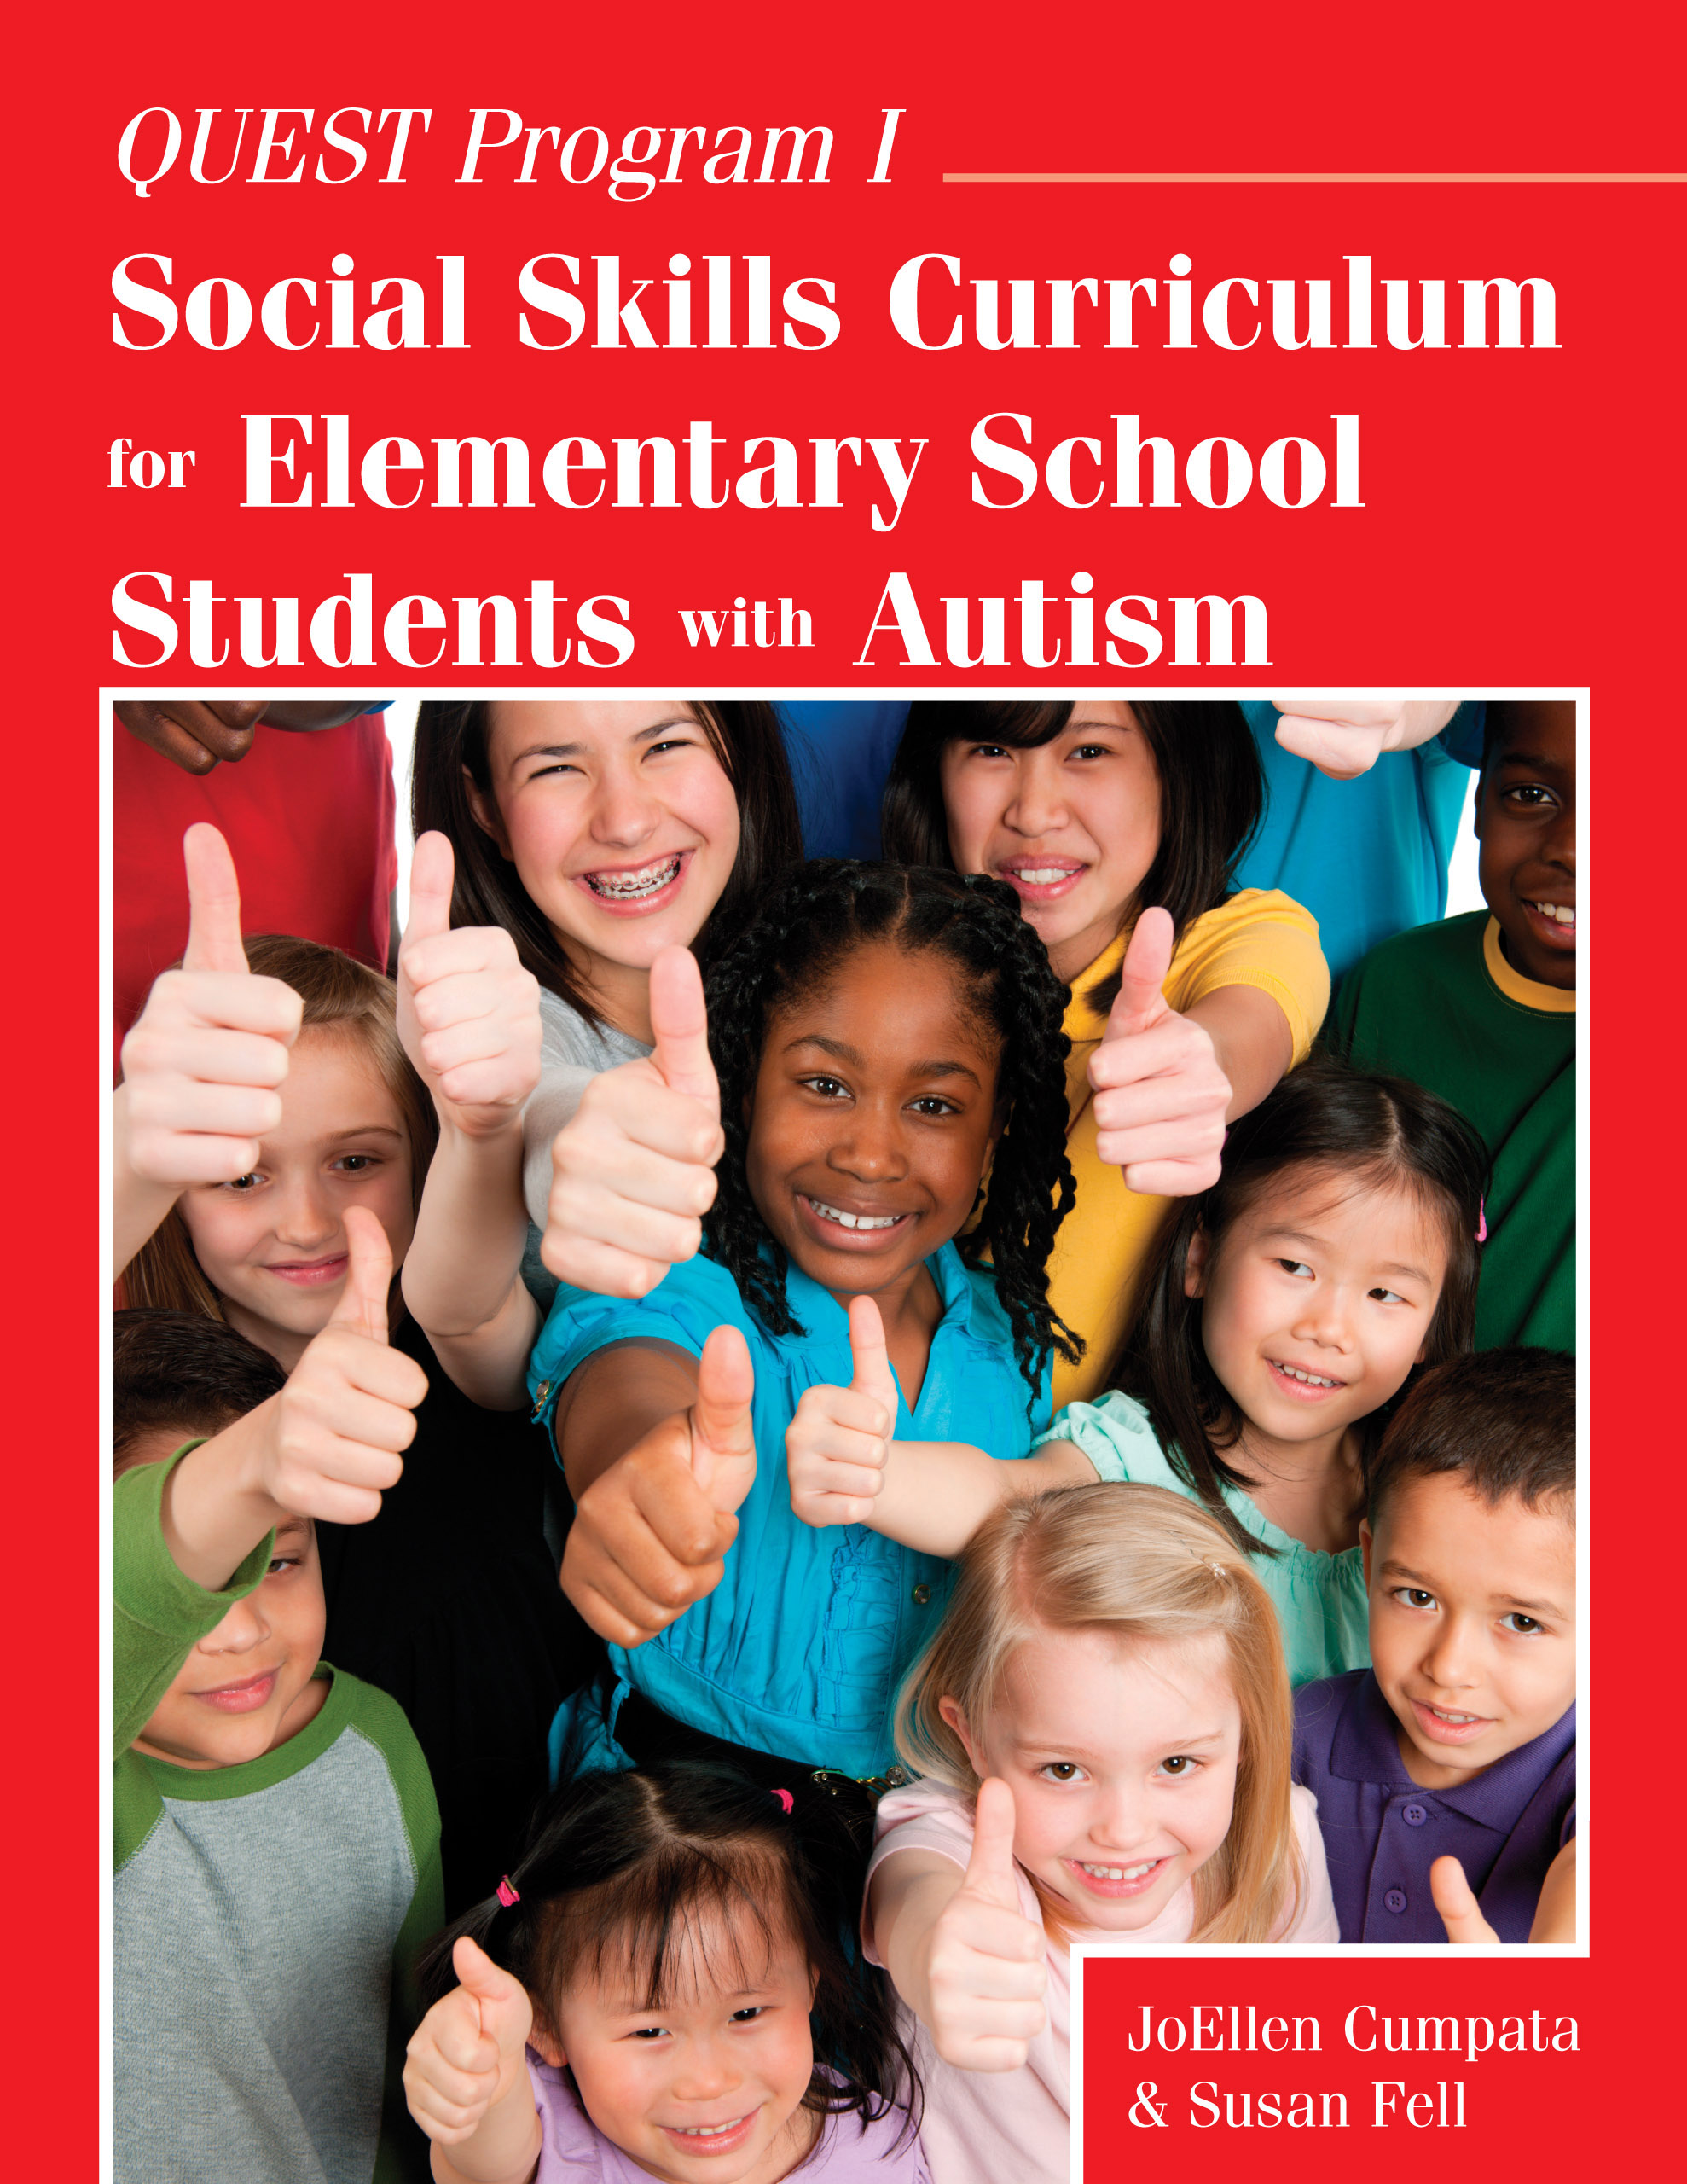 Quest Program I Social Skills Curriculum For Elementary